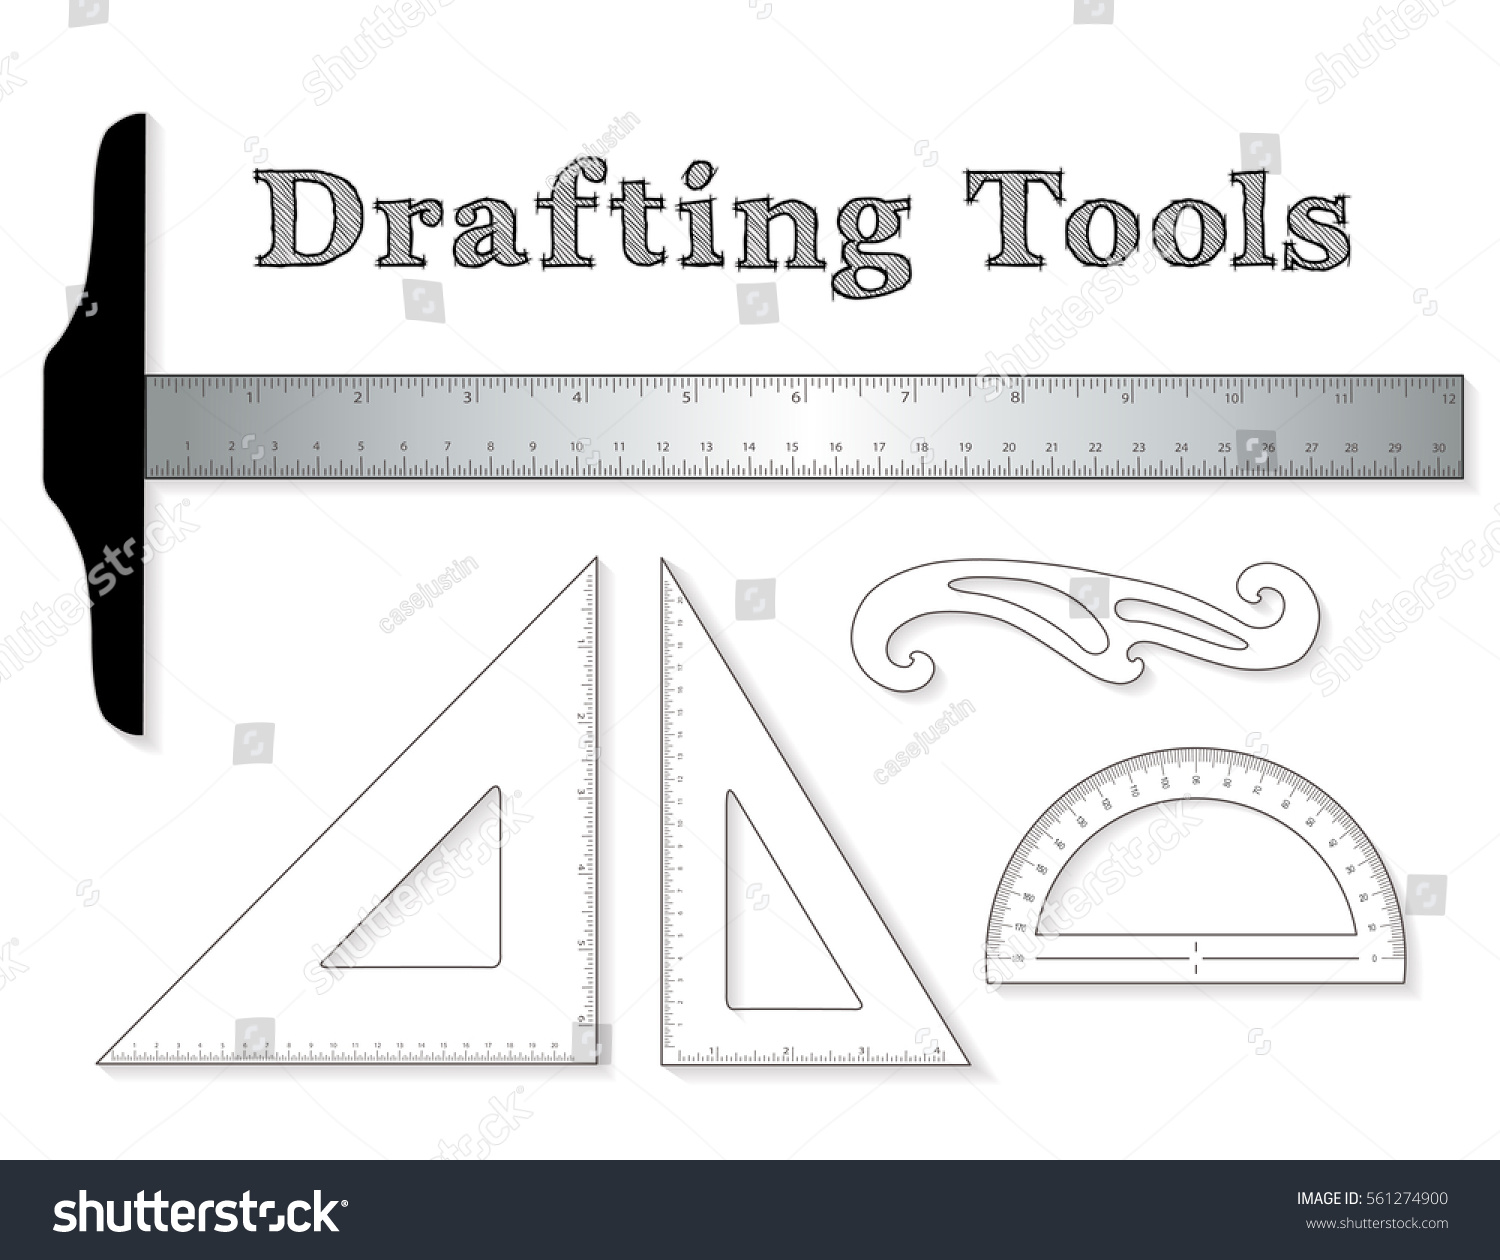 Drafting Tools For Architecture And Engineering: Aluminum T Square With  Inch And Centimeter Measure